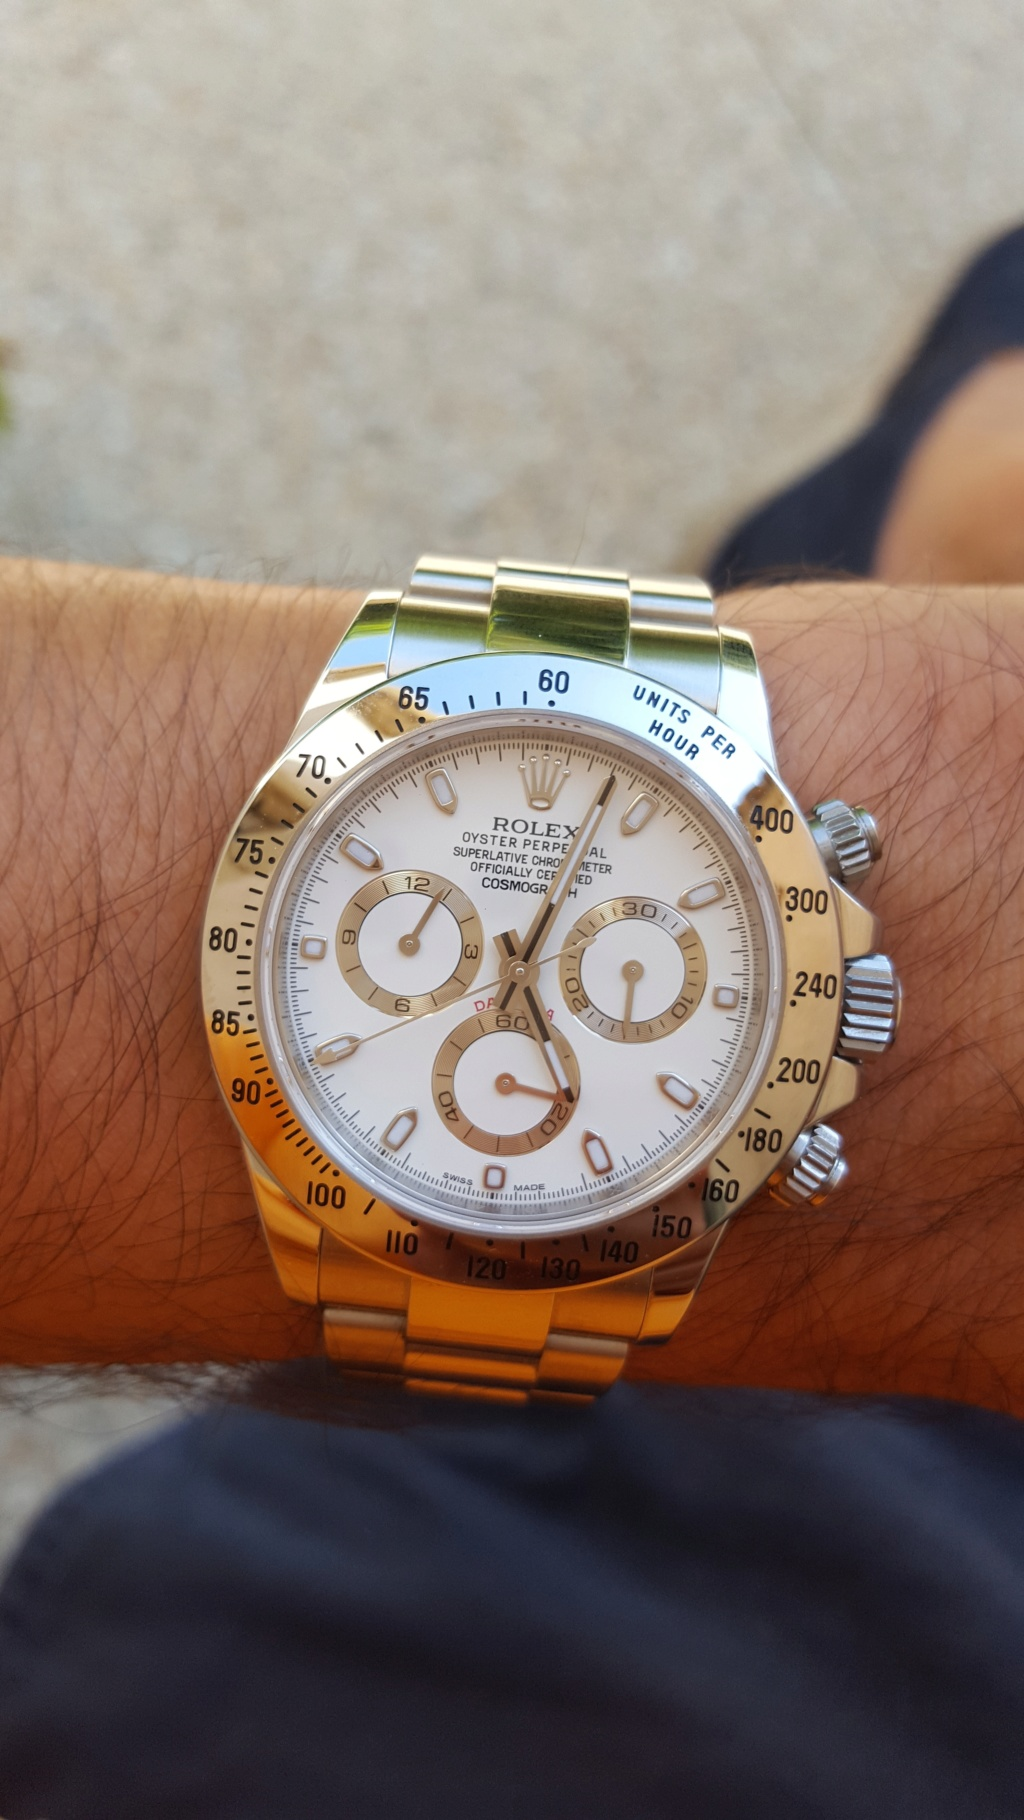 Daytona - Audemars RO / hublot Big Bang / rolex Daytona  20160910